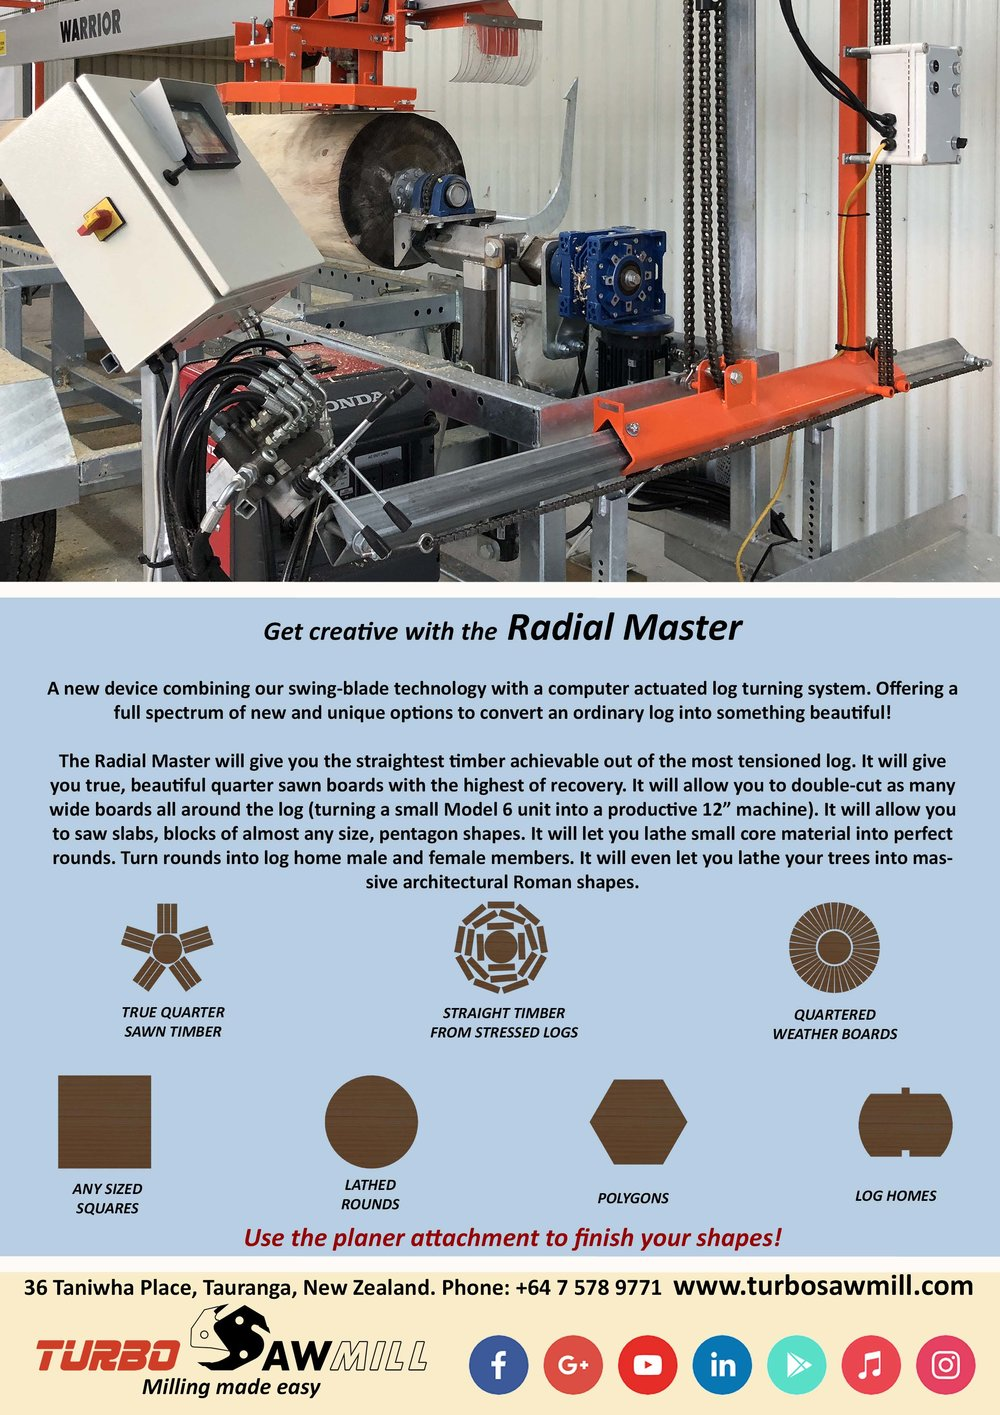 Check out our Youtube playlist. - Showing just some of the advantages of the Radial Master.